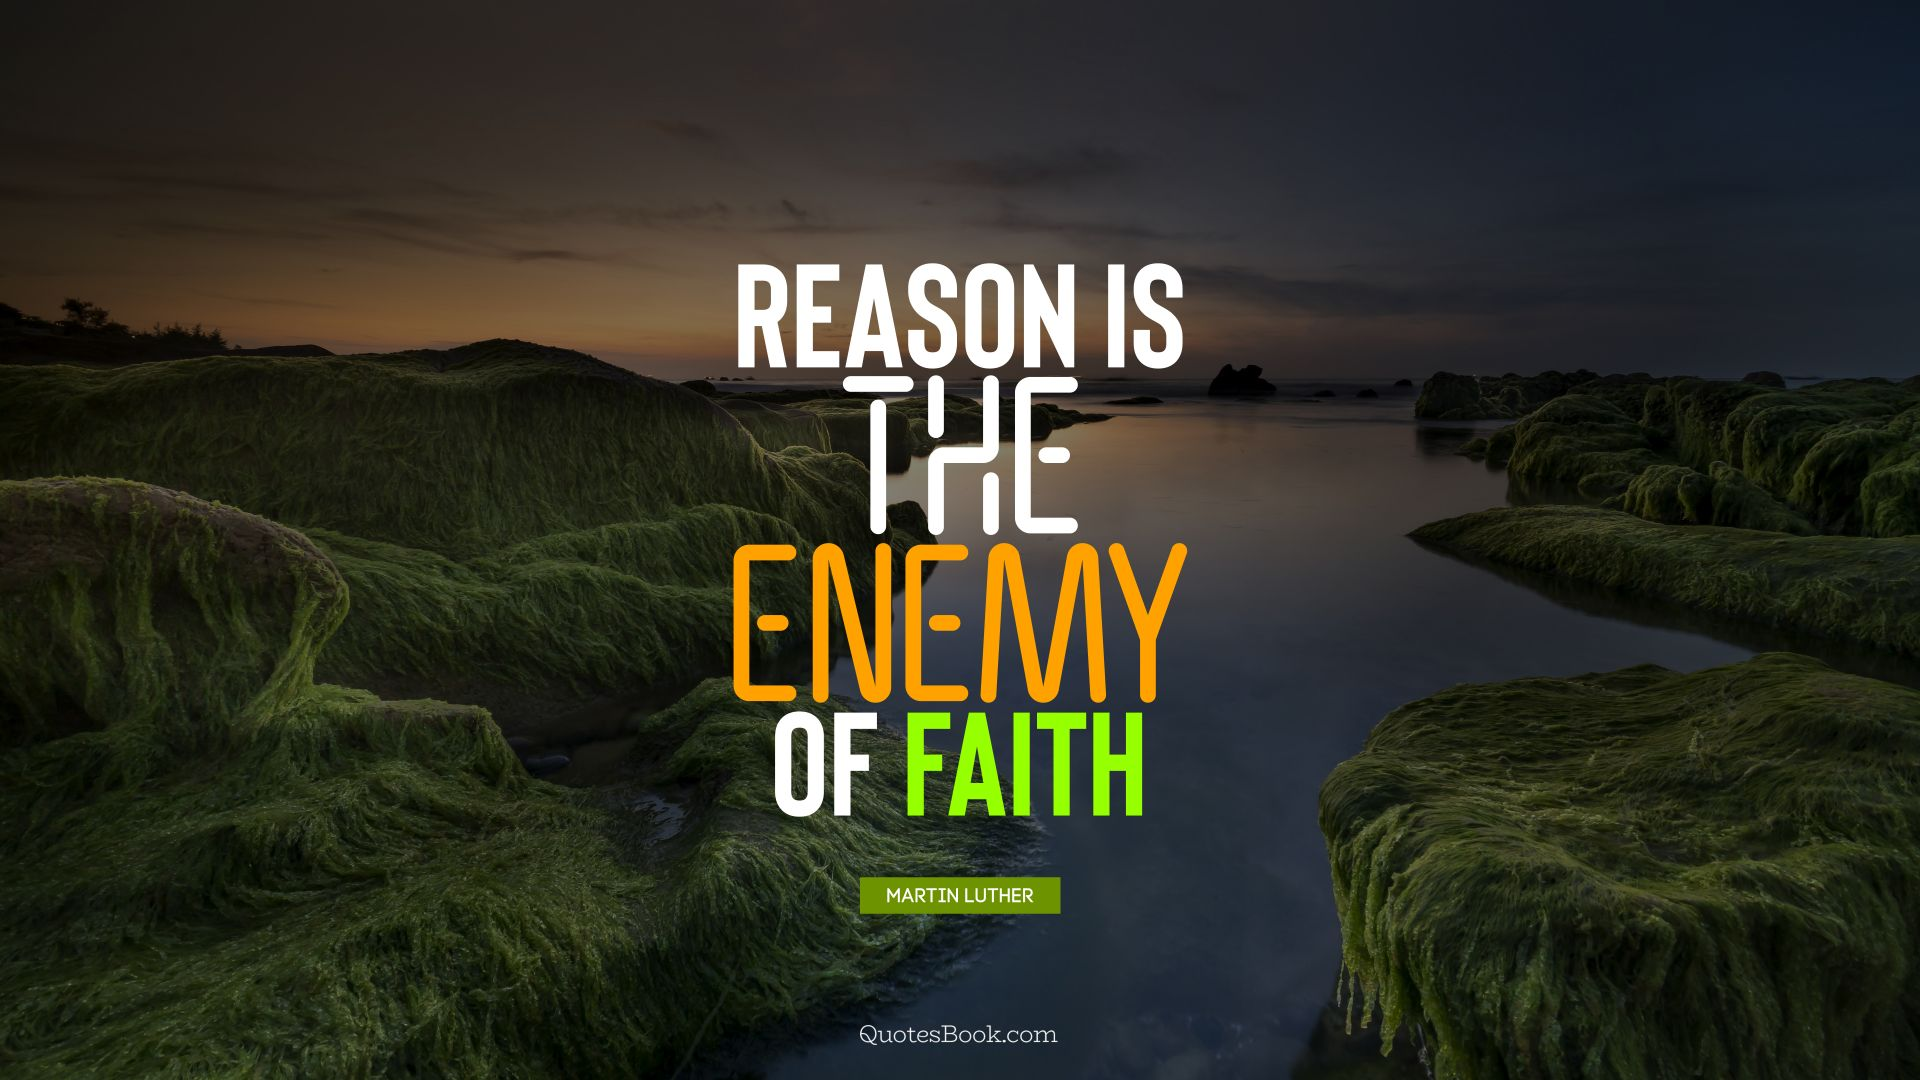 Reason is the enemy of faith. - Quote by Martin Luther